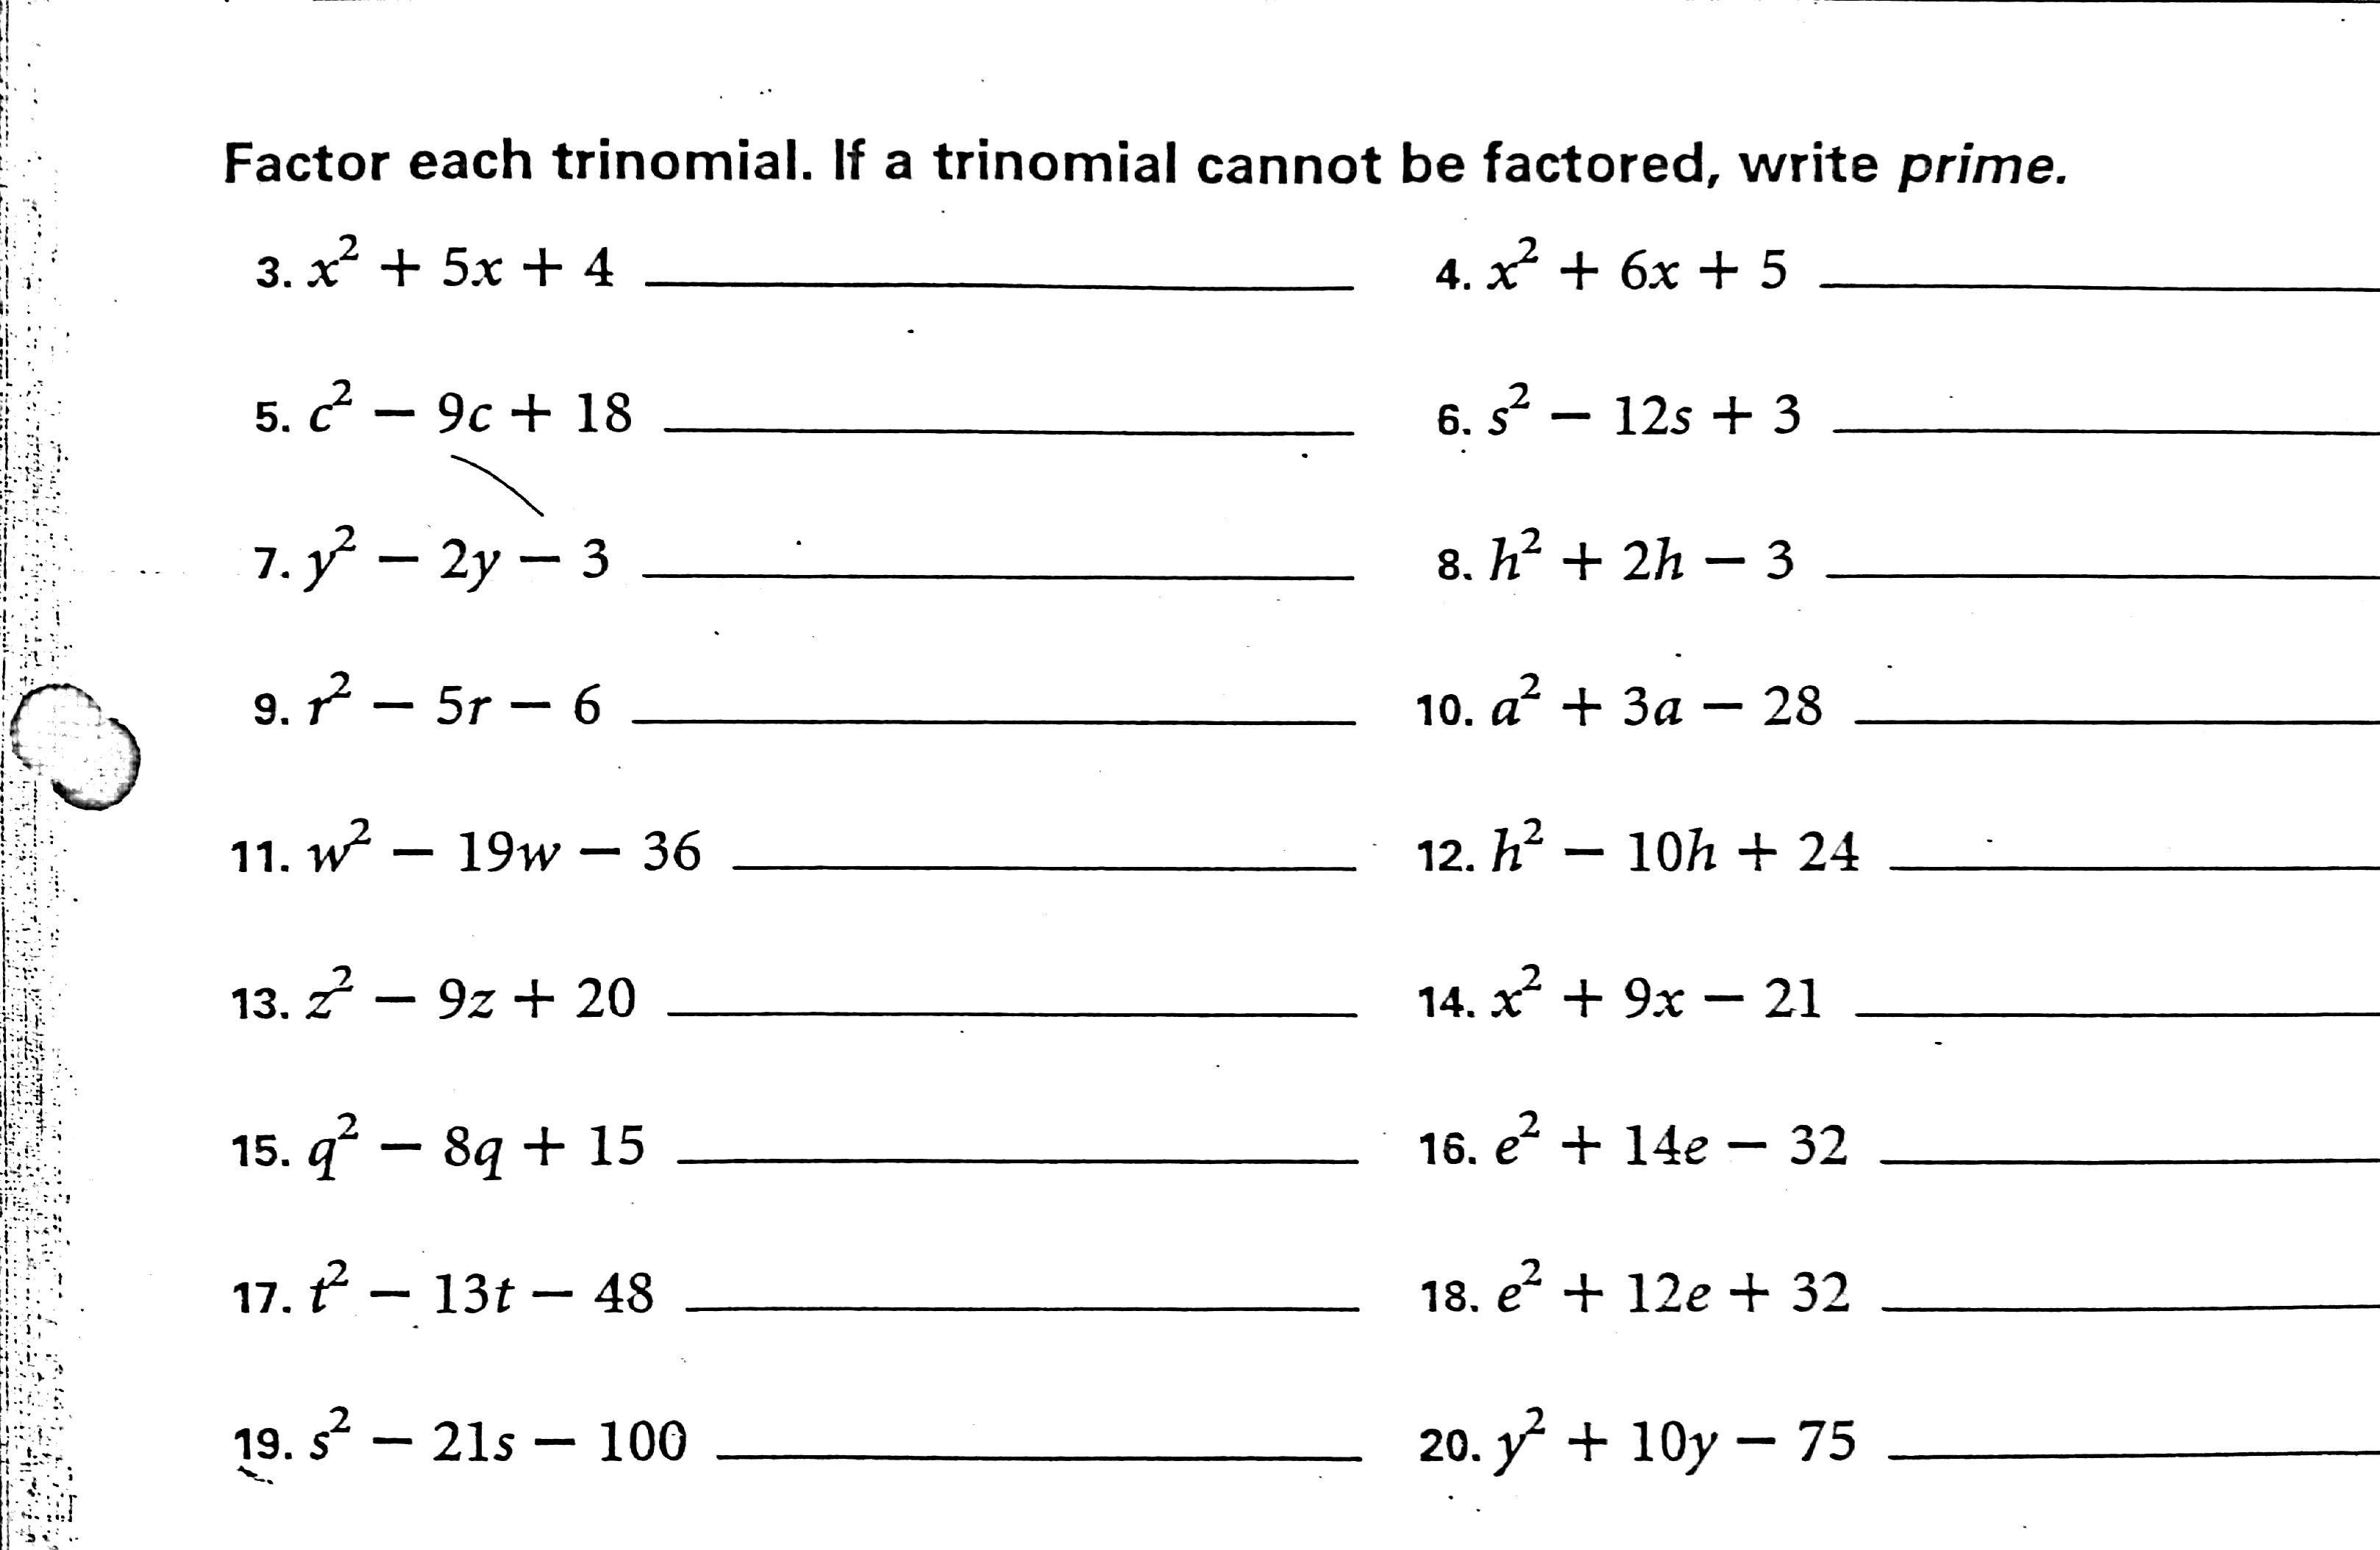 Proatmealus  Terrific Factoring Worksheet  Delwfgcom With Exquisite Factoring Polynomials Practice Worksheet With Answers Coterraneo With Extraordinary Mental Math Multiplication Worksheets Also Worksheet On Inequalities In Addition Functions Algebra Worksheets And Numbers Worksheets  As Well As Placevalue Worksheets Additionally Free First Grade Printable Worksheets From Delwfgcom With Proatmealus  Exquisite Factoring Worksheet  Delwfgcom With Extraordinary Factoring Polynomials Practice Worksheet With Answers Coterraneo And Terrific Mental Math Multiplication Worksheets Also Worksheet On Inequalities In Addition Functions Algebra Worksheets From Delwfgcom